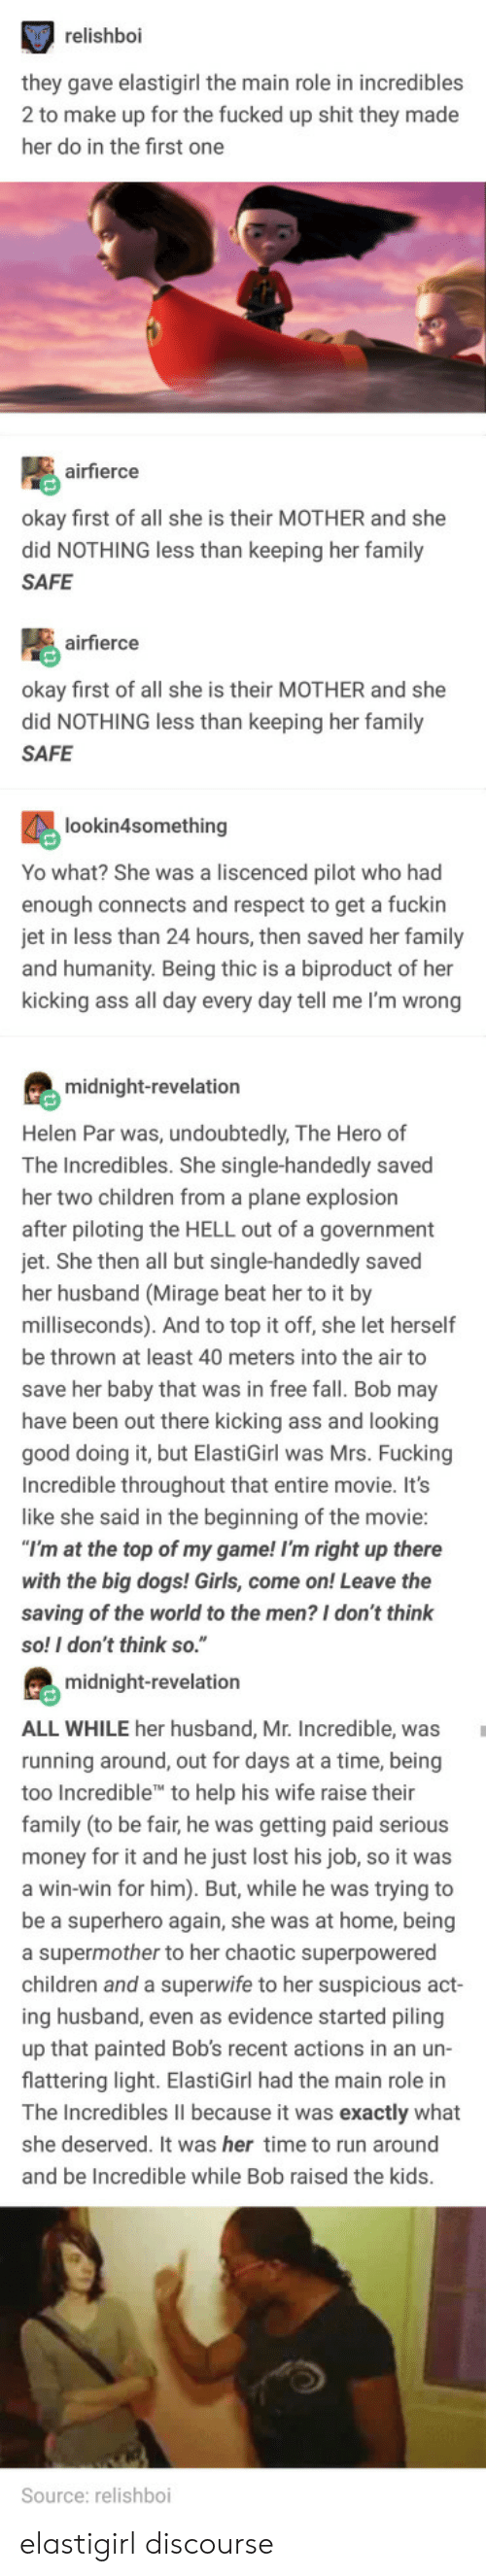 """Ass, Children, and Dogs: relishboi  hey gave elastigirl the main role in incredibles  2 to make up for the fucked up shit they made  her do in the first one  airfierce  kay first of all she is their MOTHER and she  did NOTHING less than keeping her family  SAFE  airfierce  okay first of all she is their MOTHER and she  did NOTHING less than keeping her family  SAFE  lookin4something  Yo what? She was a liscenced pilot who had  enough connects and respect to get a fuckin  in less than 24 hours, then saved her family  nd humanity. Being thic is a biproduct of her  kicking ass all day every day tell me I'm wrong  midnight-revelation  Helen Par was, undoubtedly, The Hero of  The Incredibles. She single-handedly saved  her two children from a plane explosion  fter piloting the HELL out of a government  jet. She then all but single-handedly saved  her husband (Mirage beat her to it by  milliseconds). And to top it off, she let herself  be thrown at least 40 meters into the air to  save her baby that was in free fall. Bob may  have been out there kicking ass and looking  good  Incredible throughout that entire movie. It's  like she said in the beginning of the movie  doing it, but ElastiGirl was Mrs. Fucking  at the top of my game! I'm right up there  with the big dogs! Girls, come on! Leave the  saving of the world to the men? I don't think  so! I don't think so.""""  midnight-revelation  ALL WHILE her husband, Mr. Incredible, was  running around, out for days at a time, being  too In  family (to be fair, he was getting paid serious  credible to help his wife raise their  ney for it and he just lost his job, so it was  win-win for him). But, while he was trying to  e a superhero again, she was at home, being  a supermother to her chaotic superpowered  children and a superwife to her suspicious a  ing husband, even as evidence started piling  up that painted Bob's recent actions in an un-  flattering light. ElastiGirl had the main role in  ct  he Incredibles lII because it wa"""